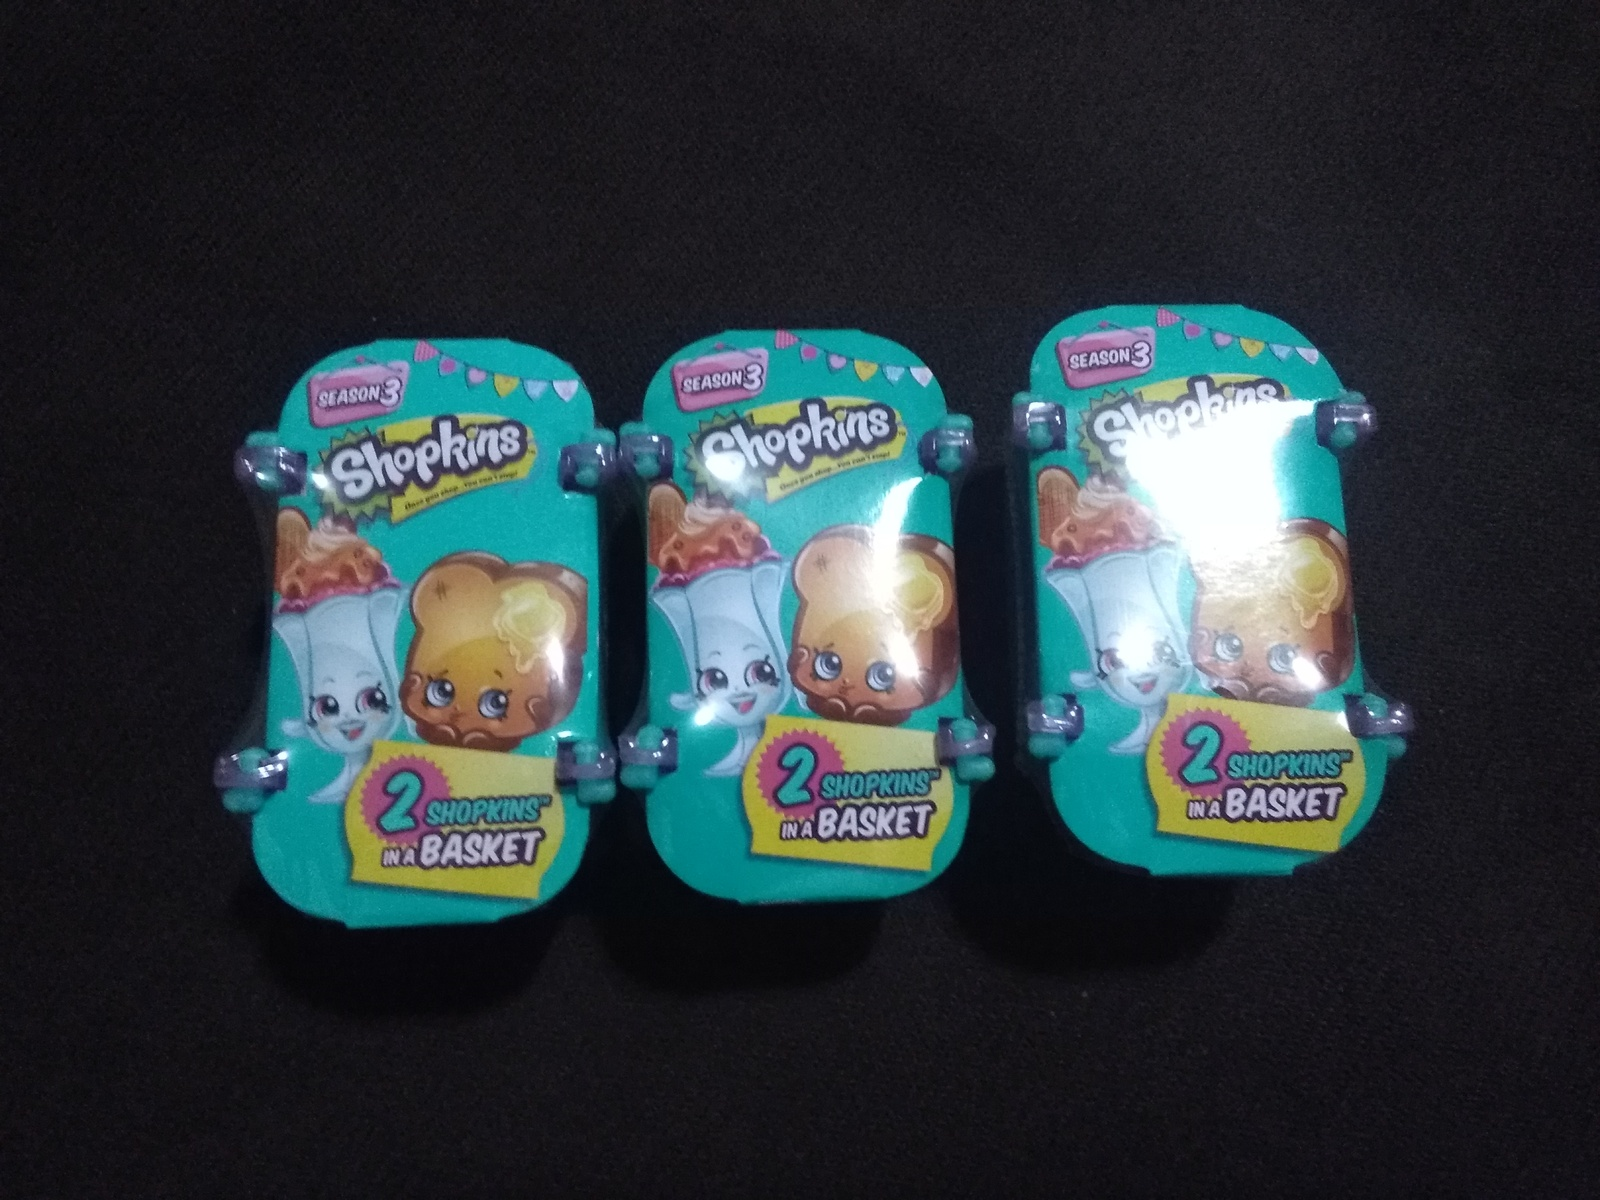 Shopkins 2-Pack Shopping Basket SEASON 3 Limited Edition- Lot of 3